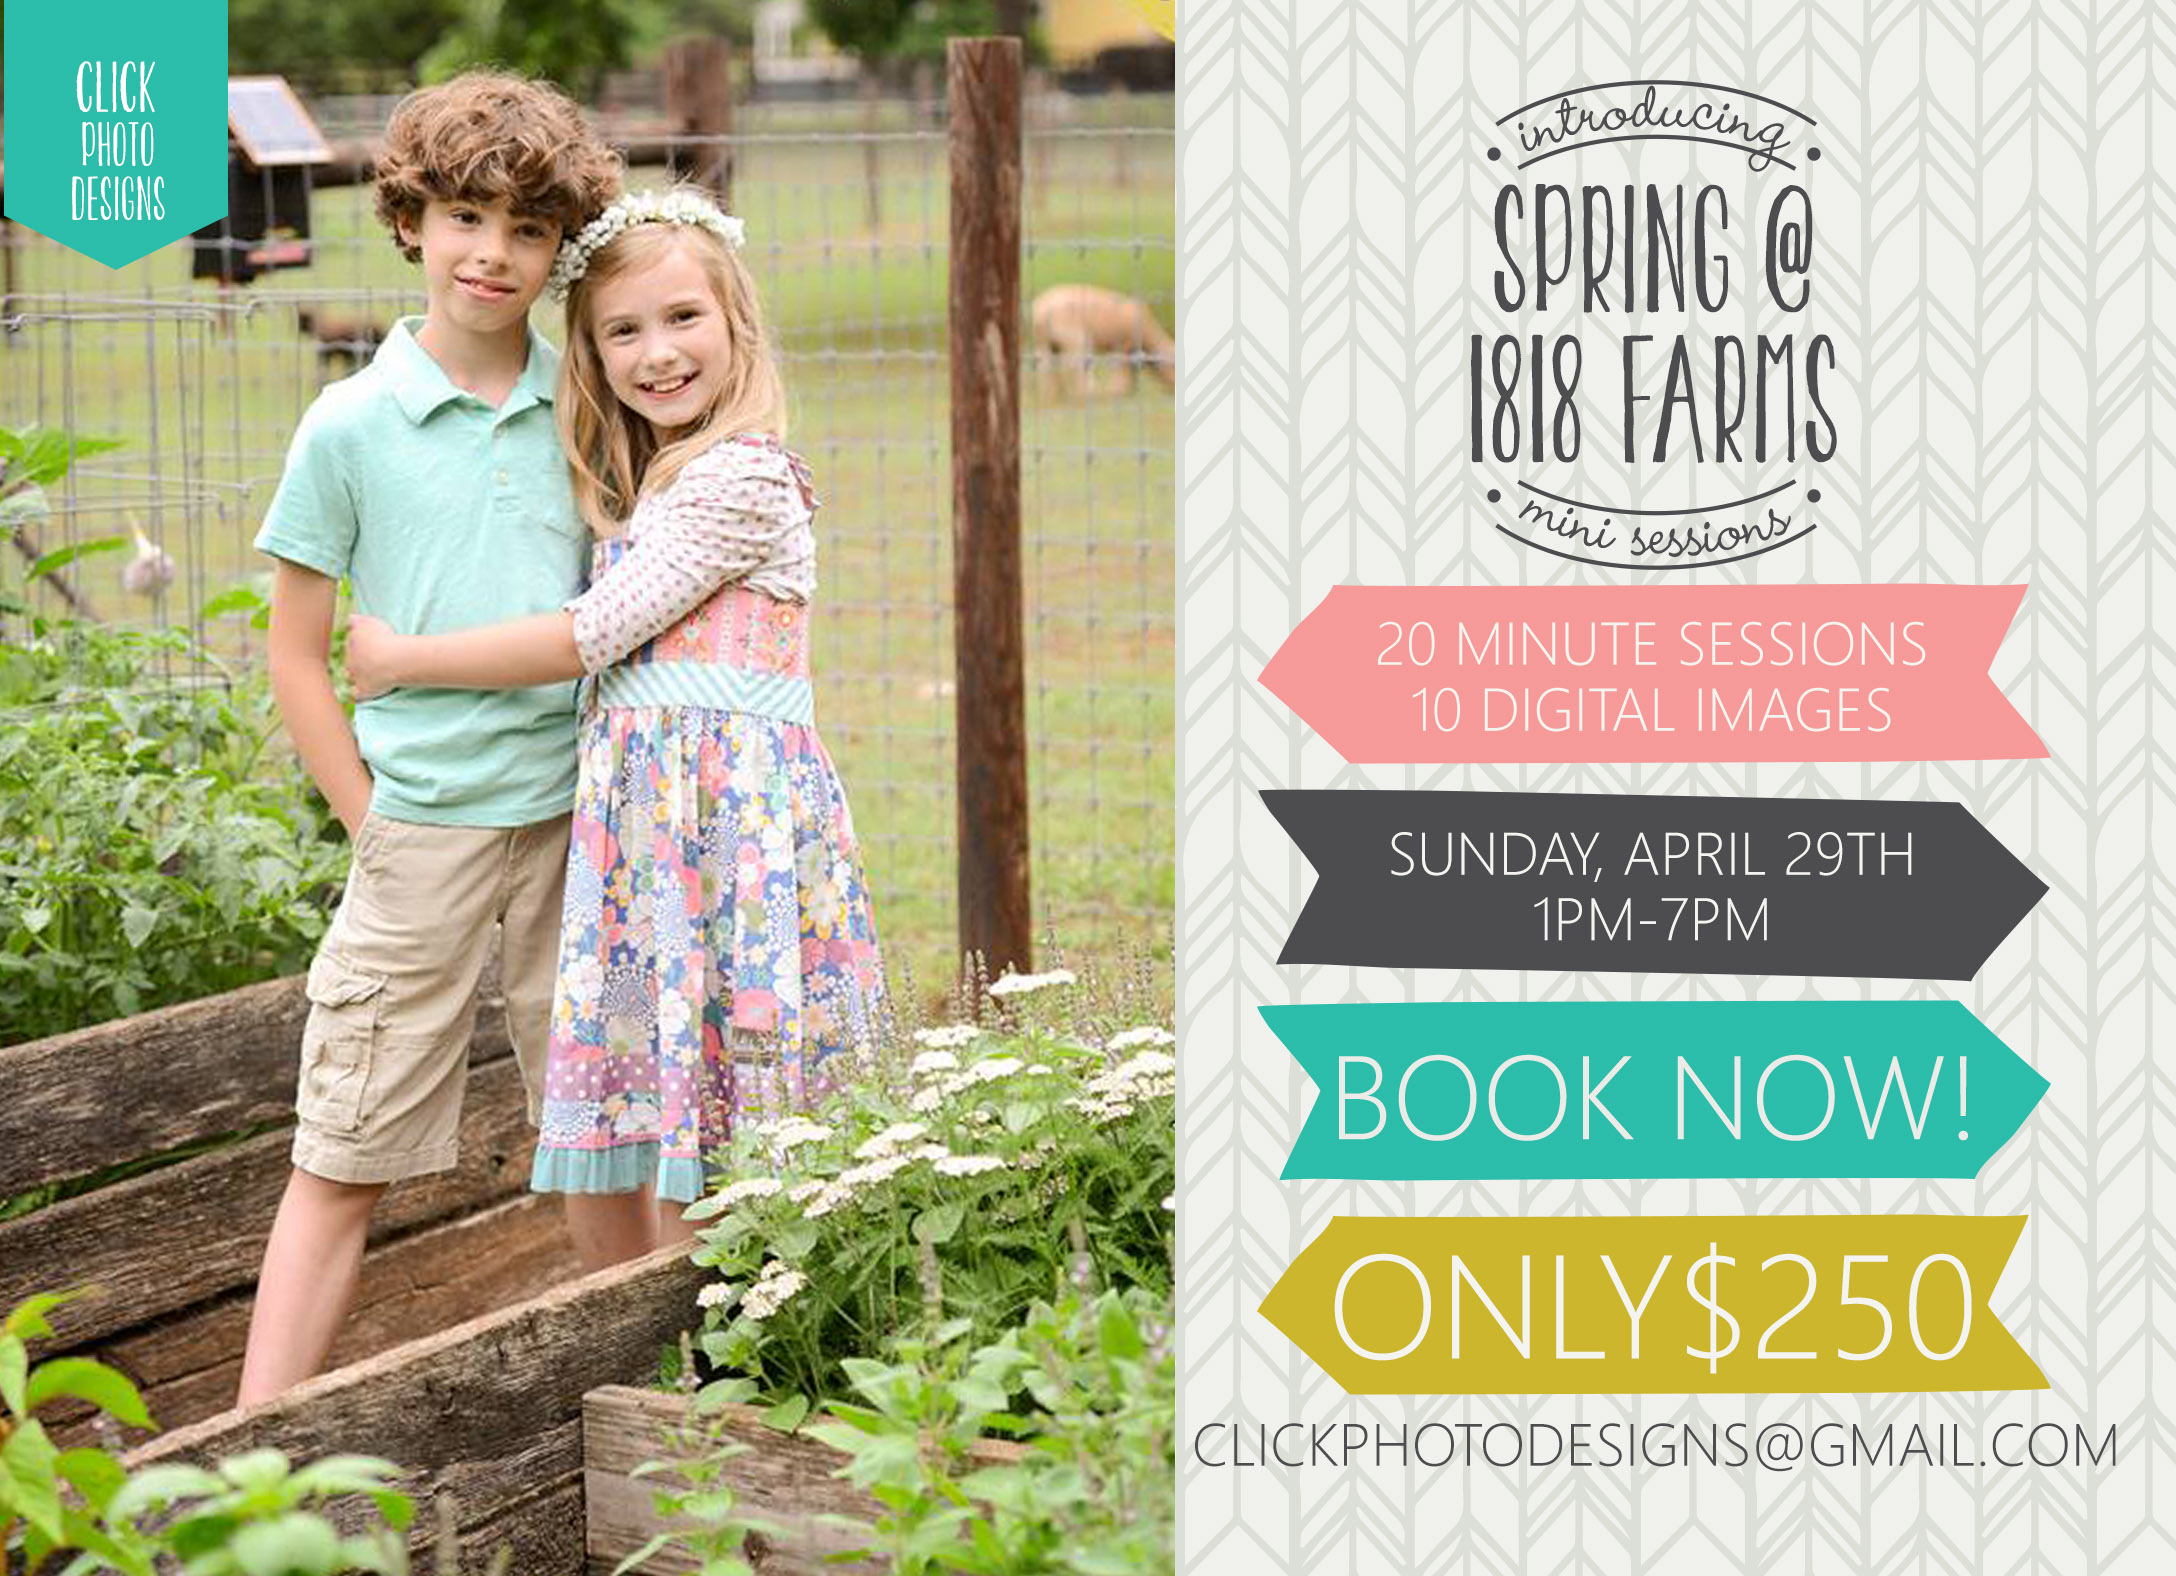 Spring MiniSessions at 1818 Farms